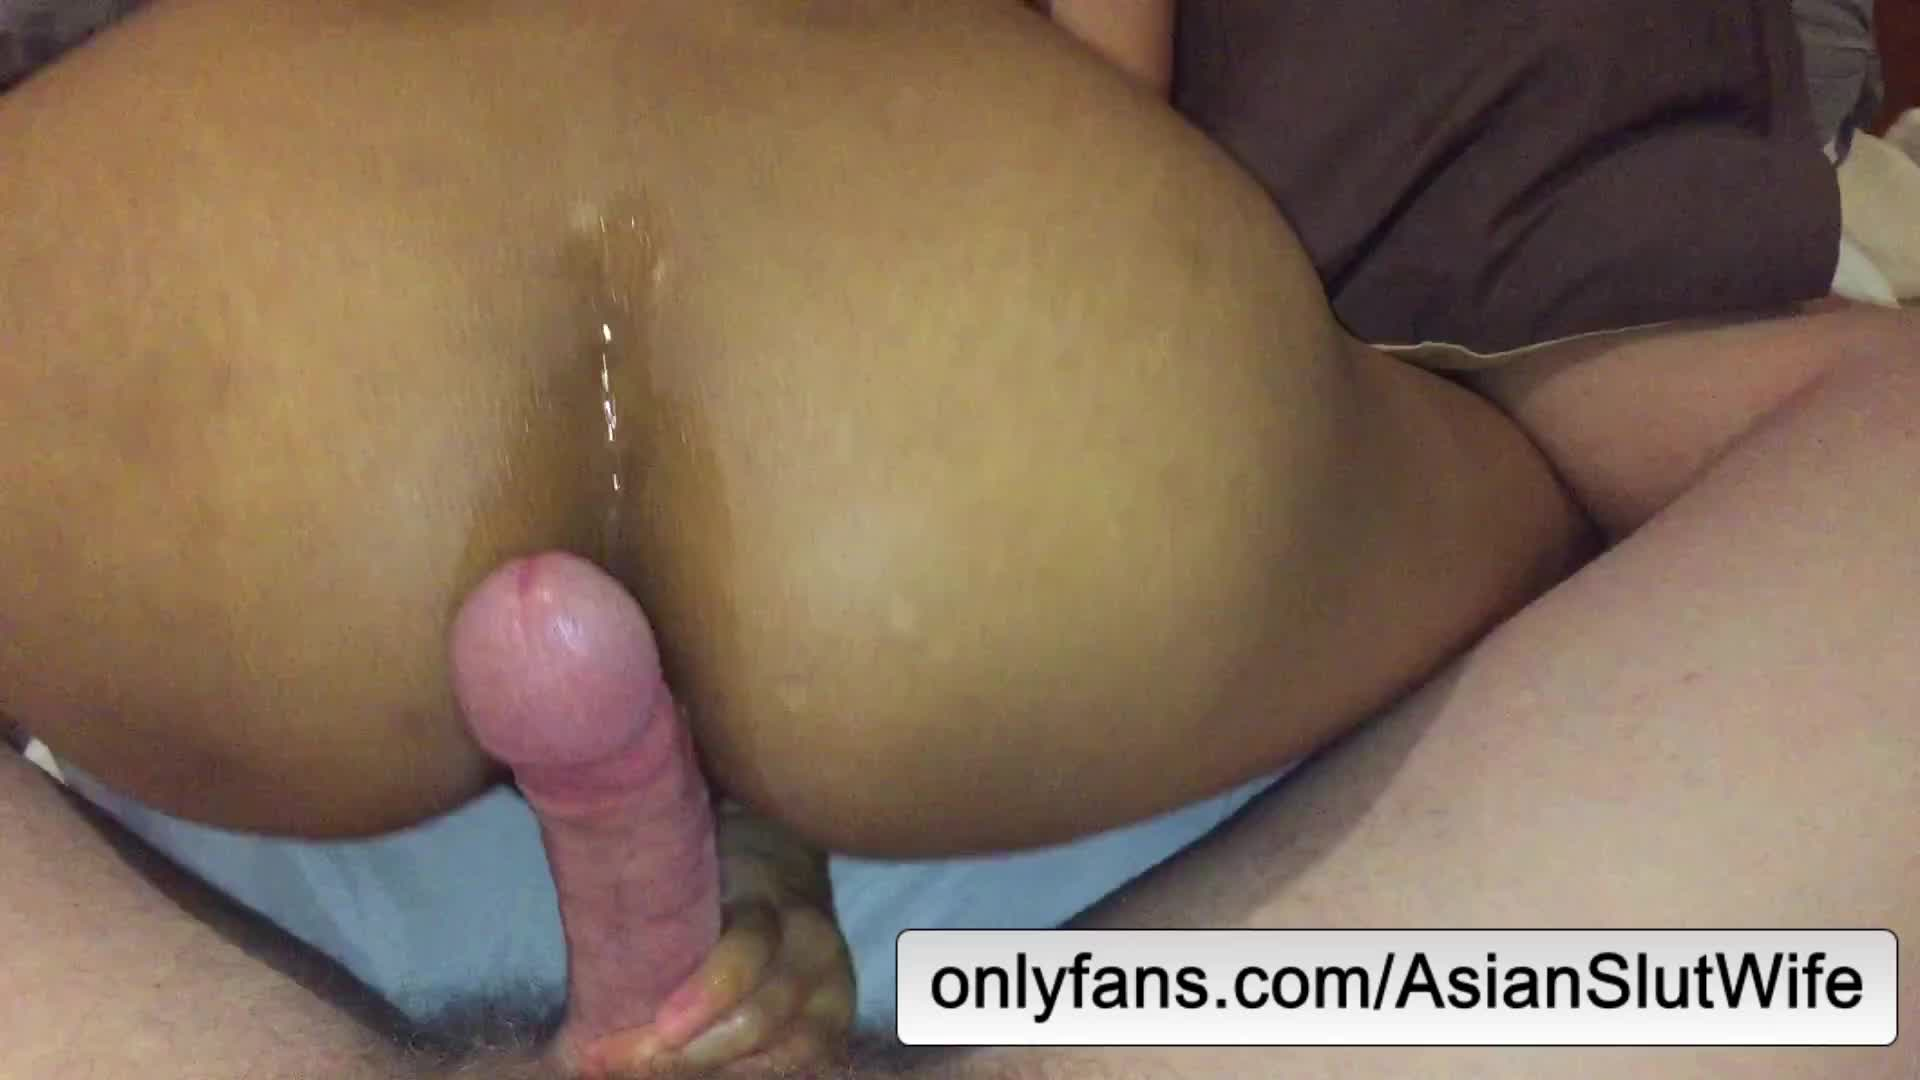 Asian Hotdogging Hard Dick